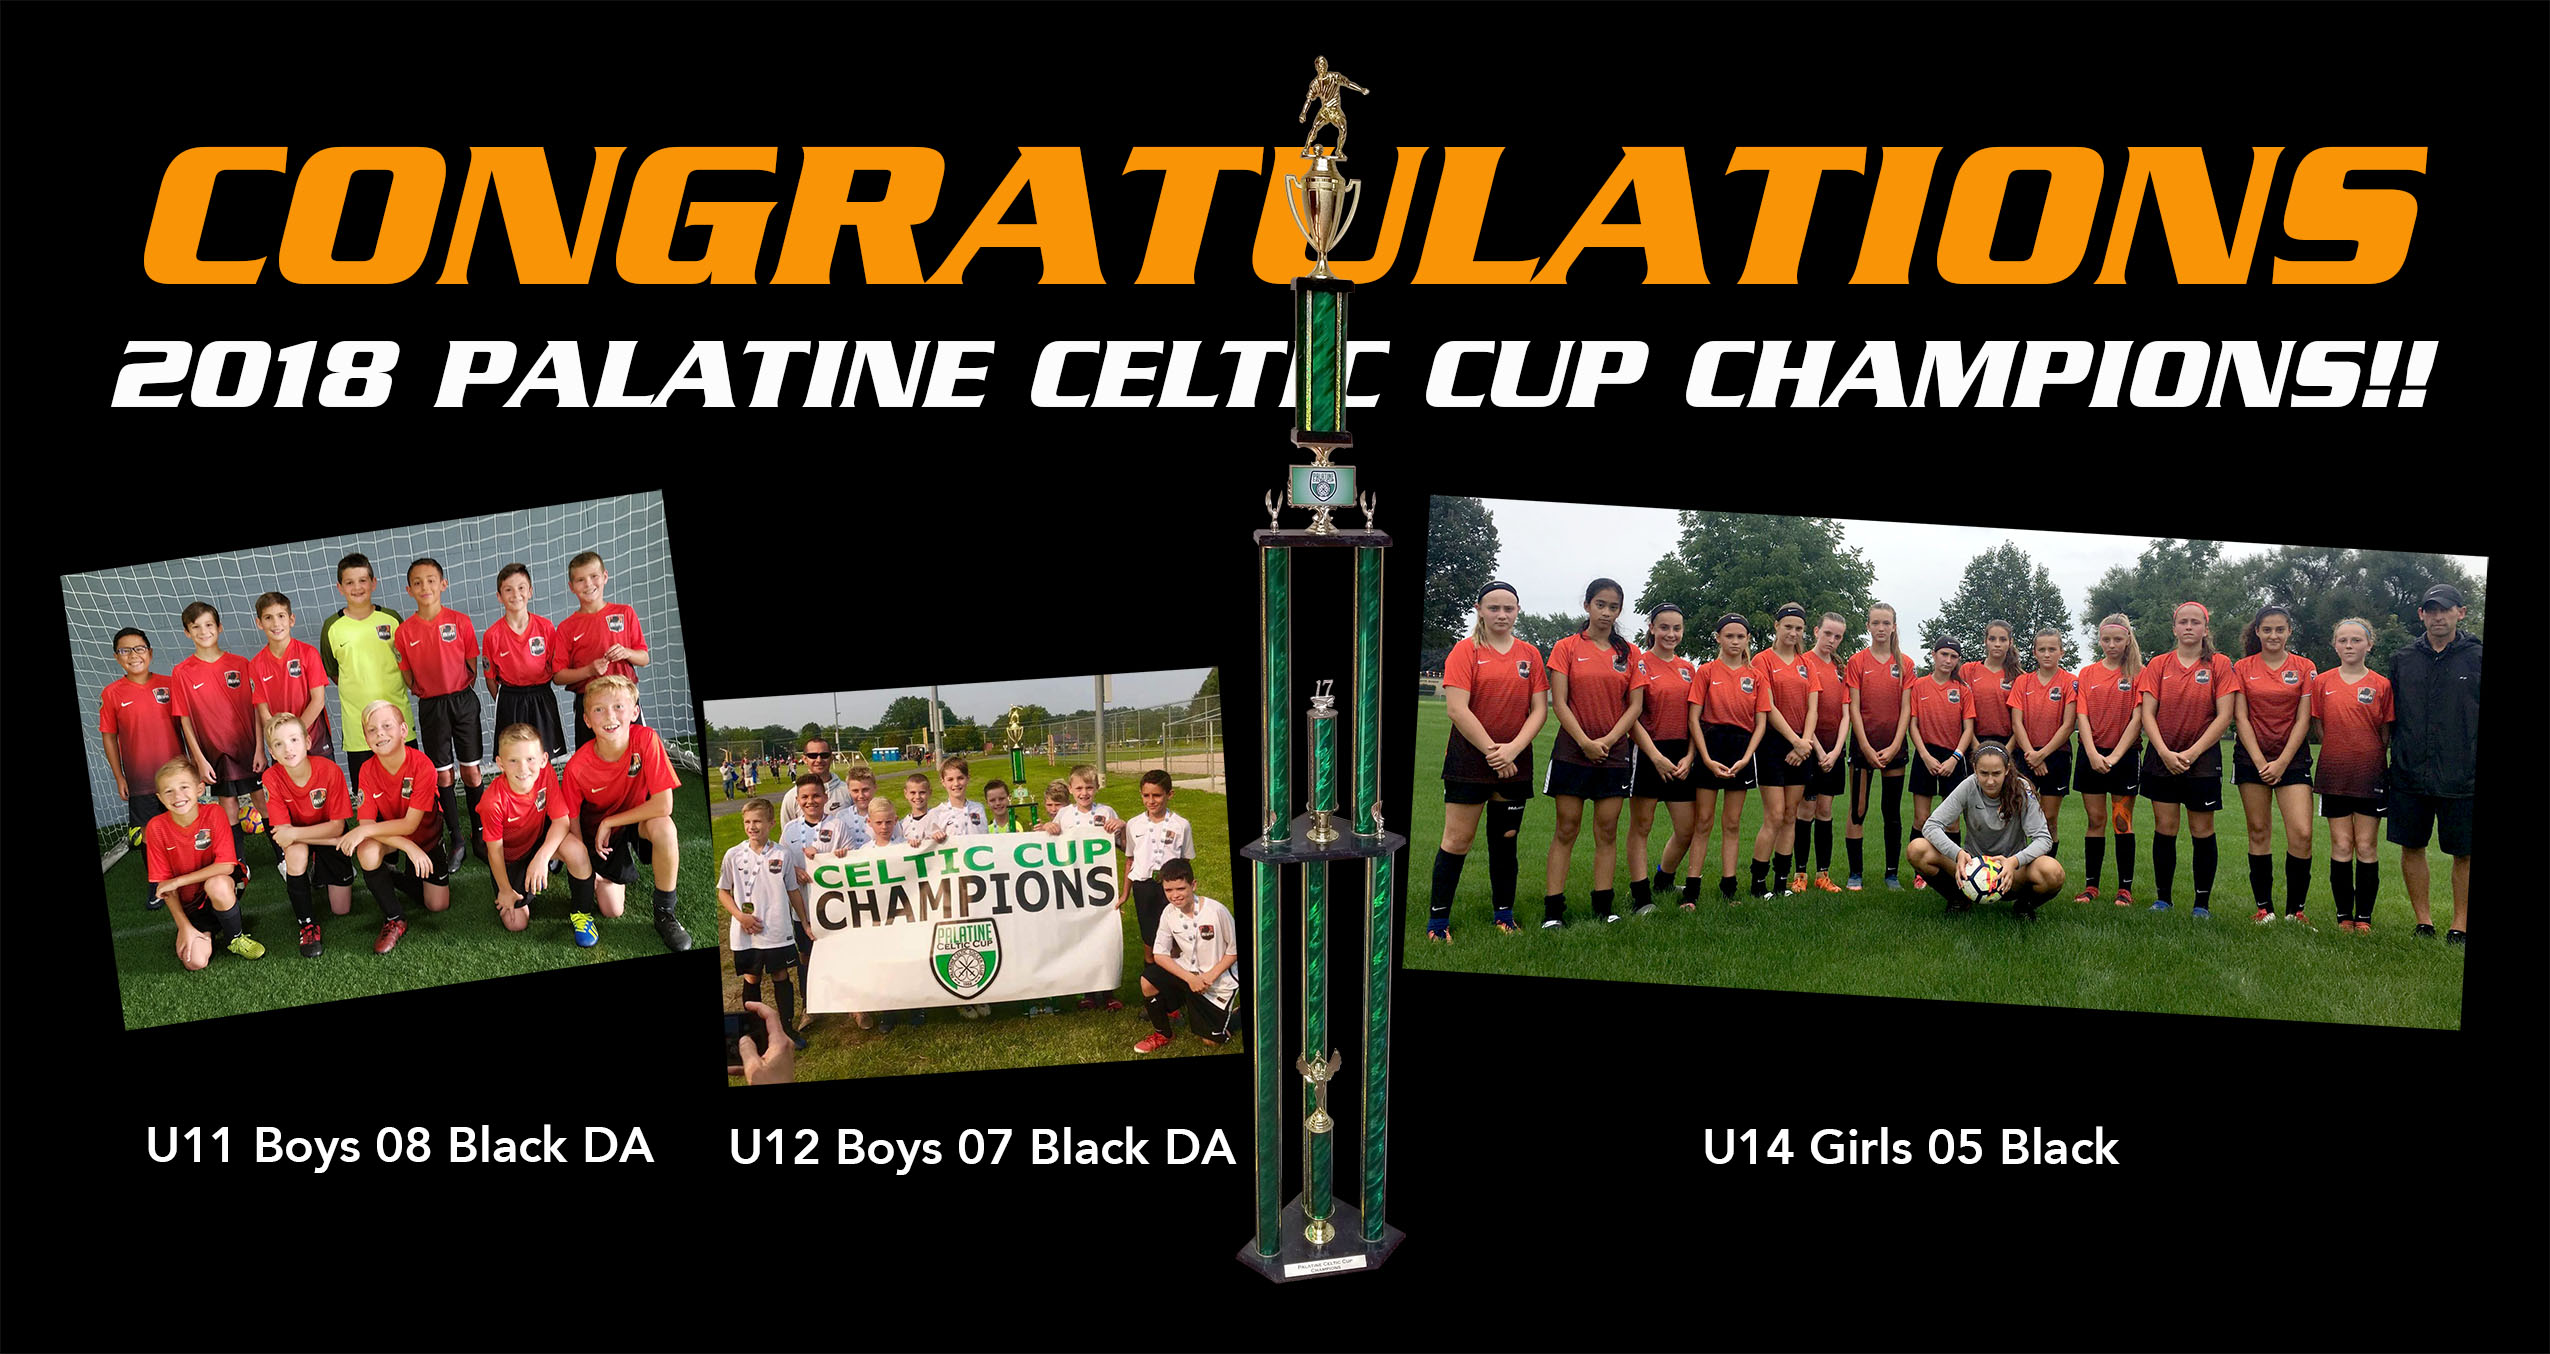 2018 Palatine Celtic Cup Champions!